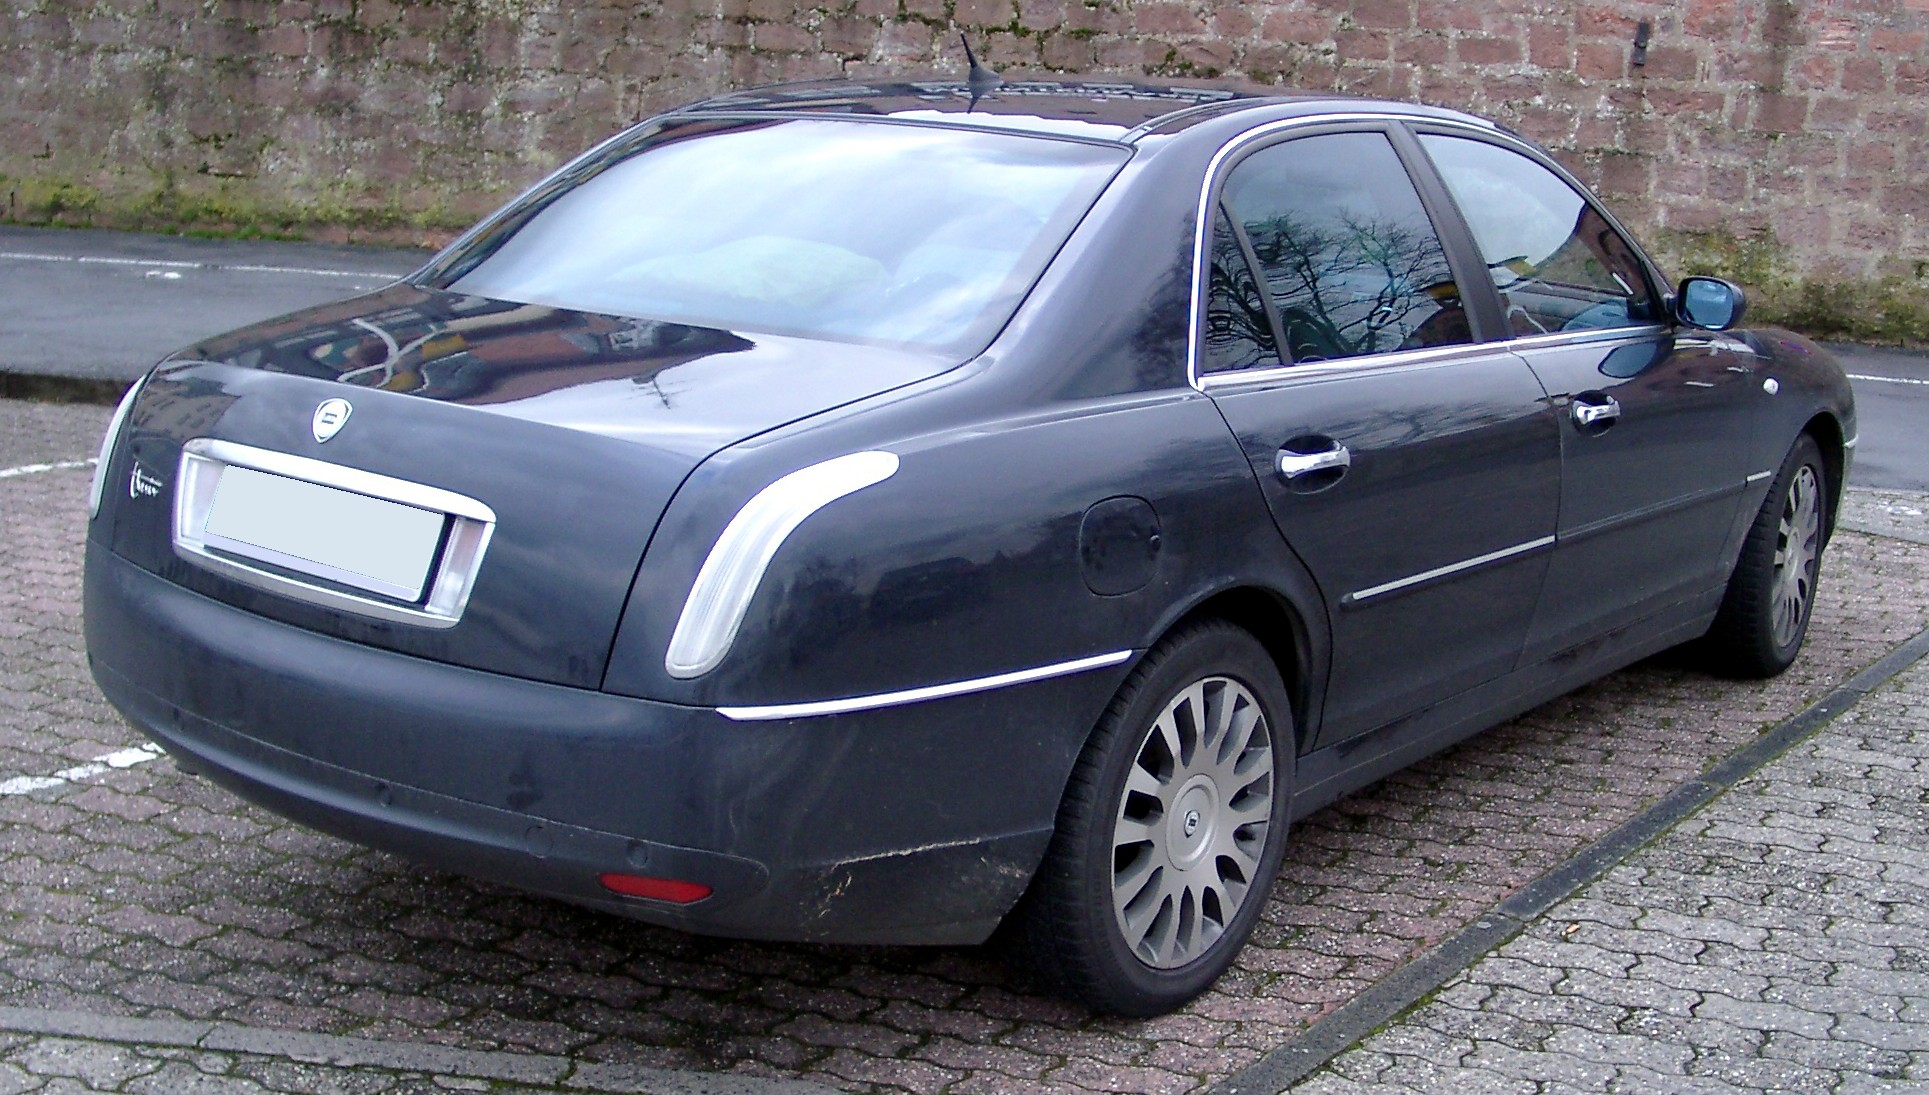 2005 Lancia Thesis Photos, Informations, Articles - BestCarMag.com